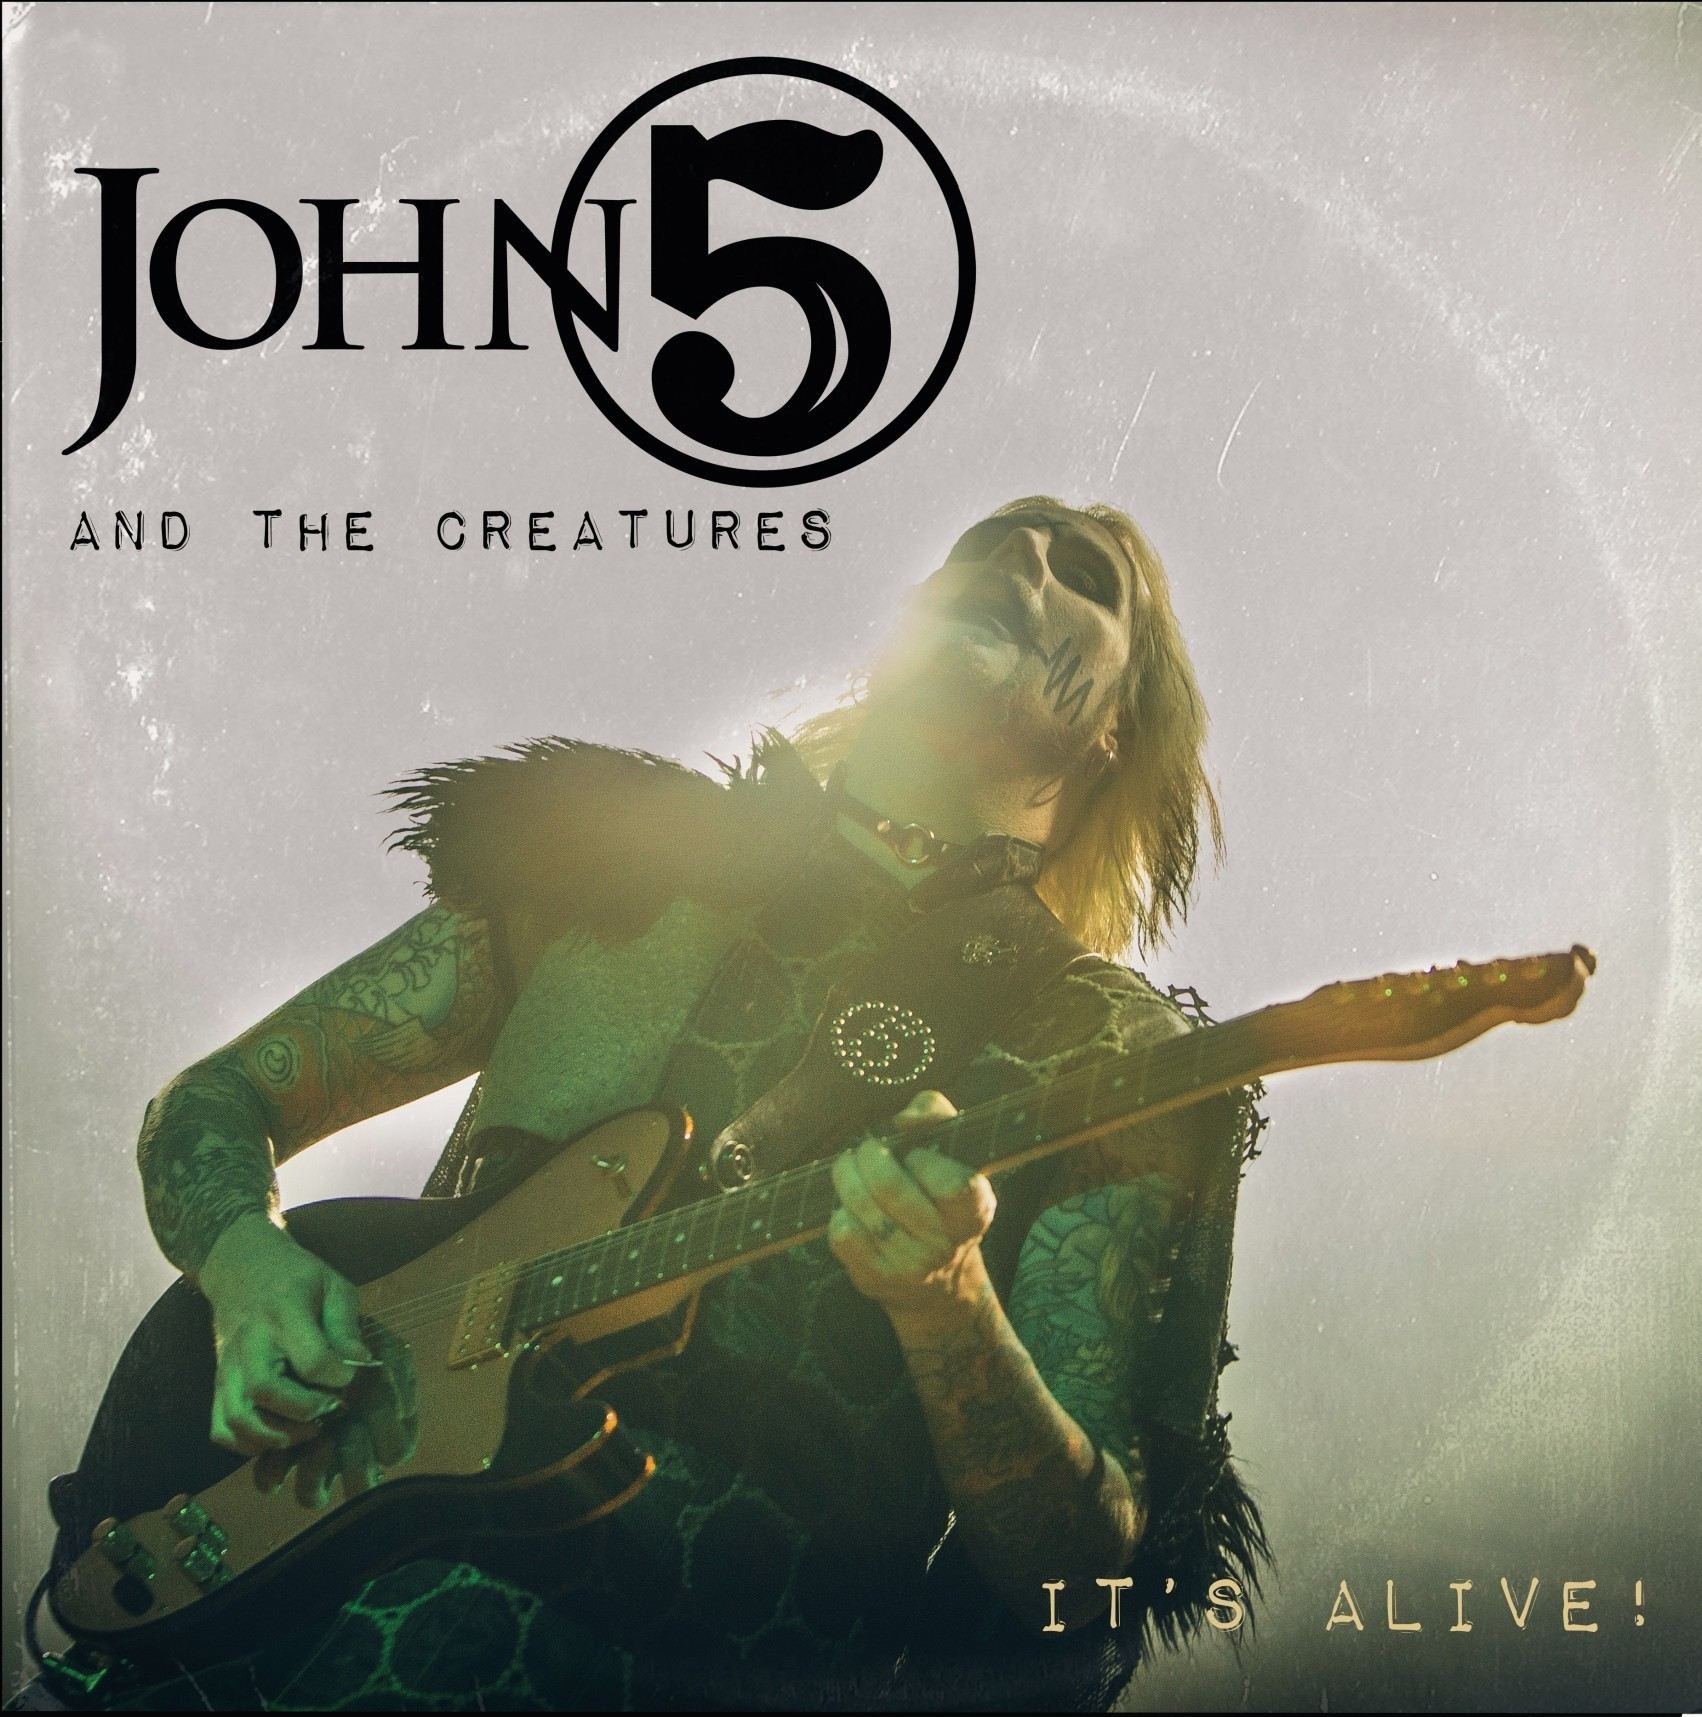 John 5 And The Creatures Release It's Alive!